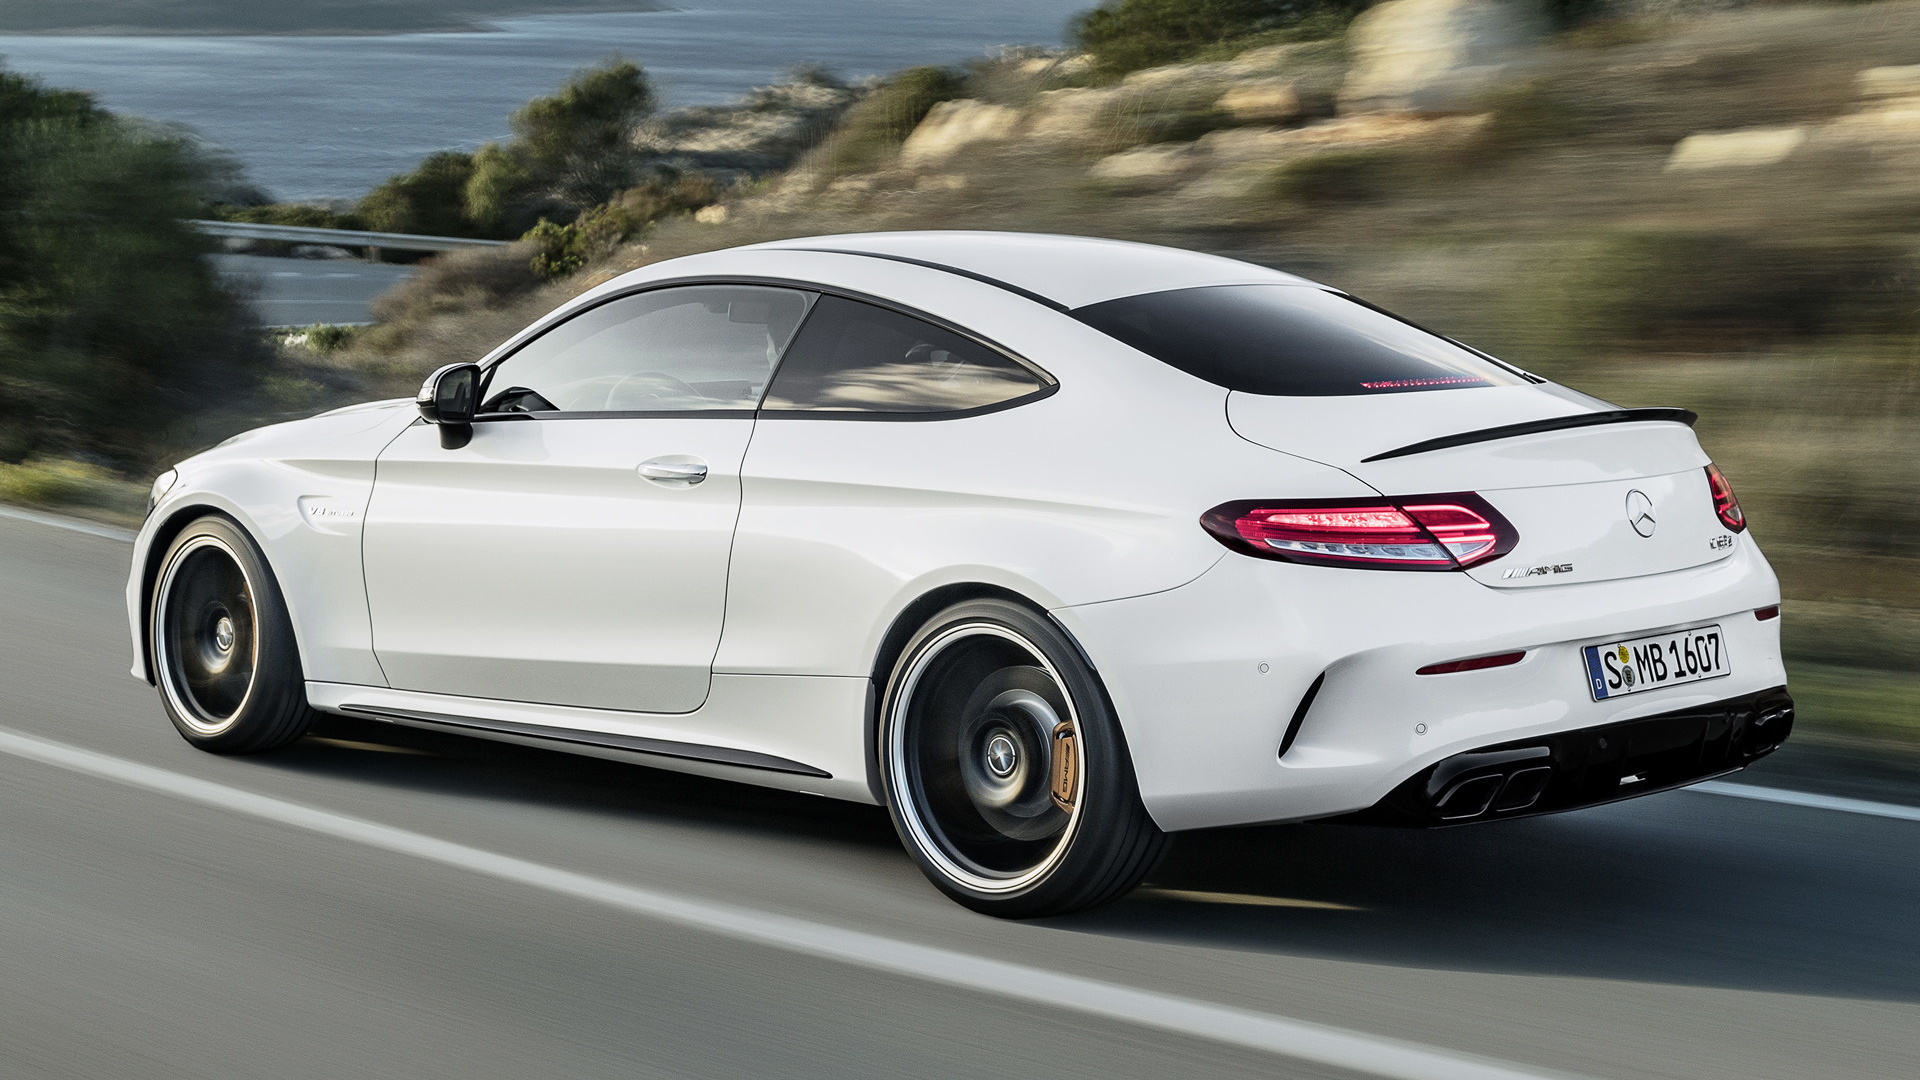 2019 Ram Hd >> Mercedes-AMG C 63 S Coupe (2018) Wallpapers and HD Images - Car Pixel